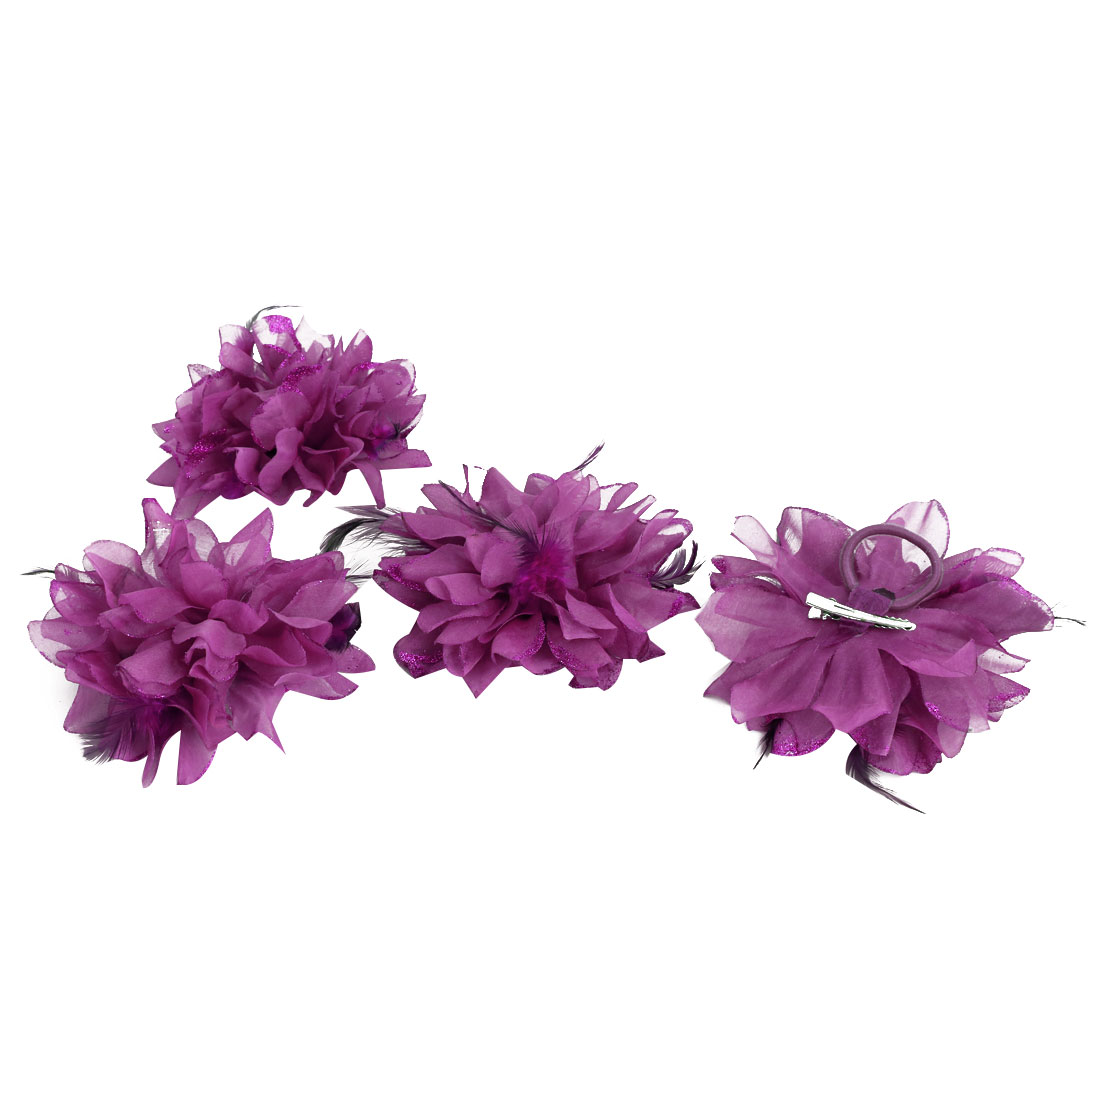 Wedding Fascinator Bridesmaid Hand Hair Decoration Wrist Flower Fuchsia 4 Pcs - image 4 of 4